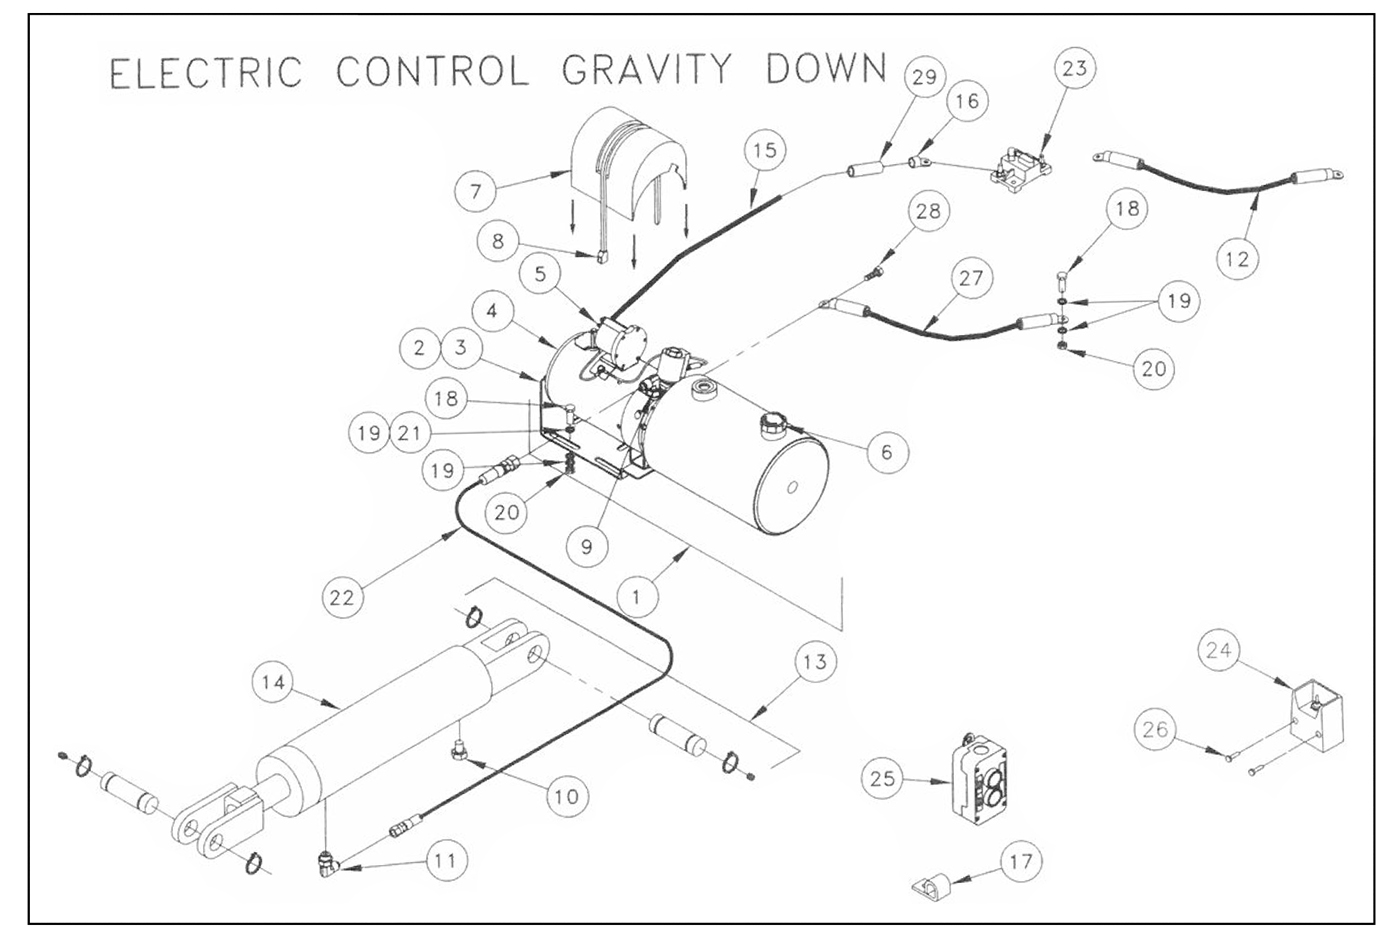 TWL125/16/20 Pump Assembly (Electric Control, Gravity Down) Diagram